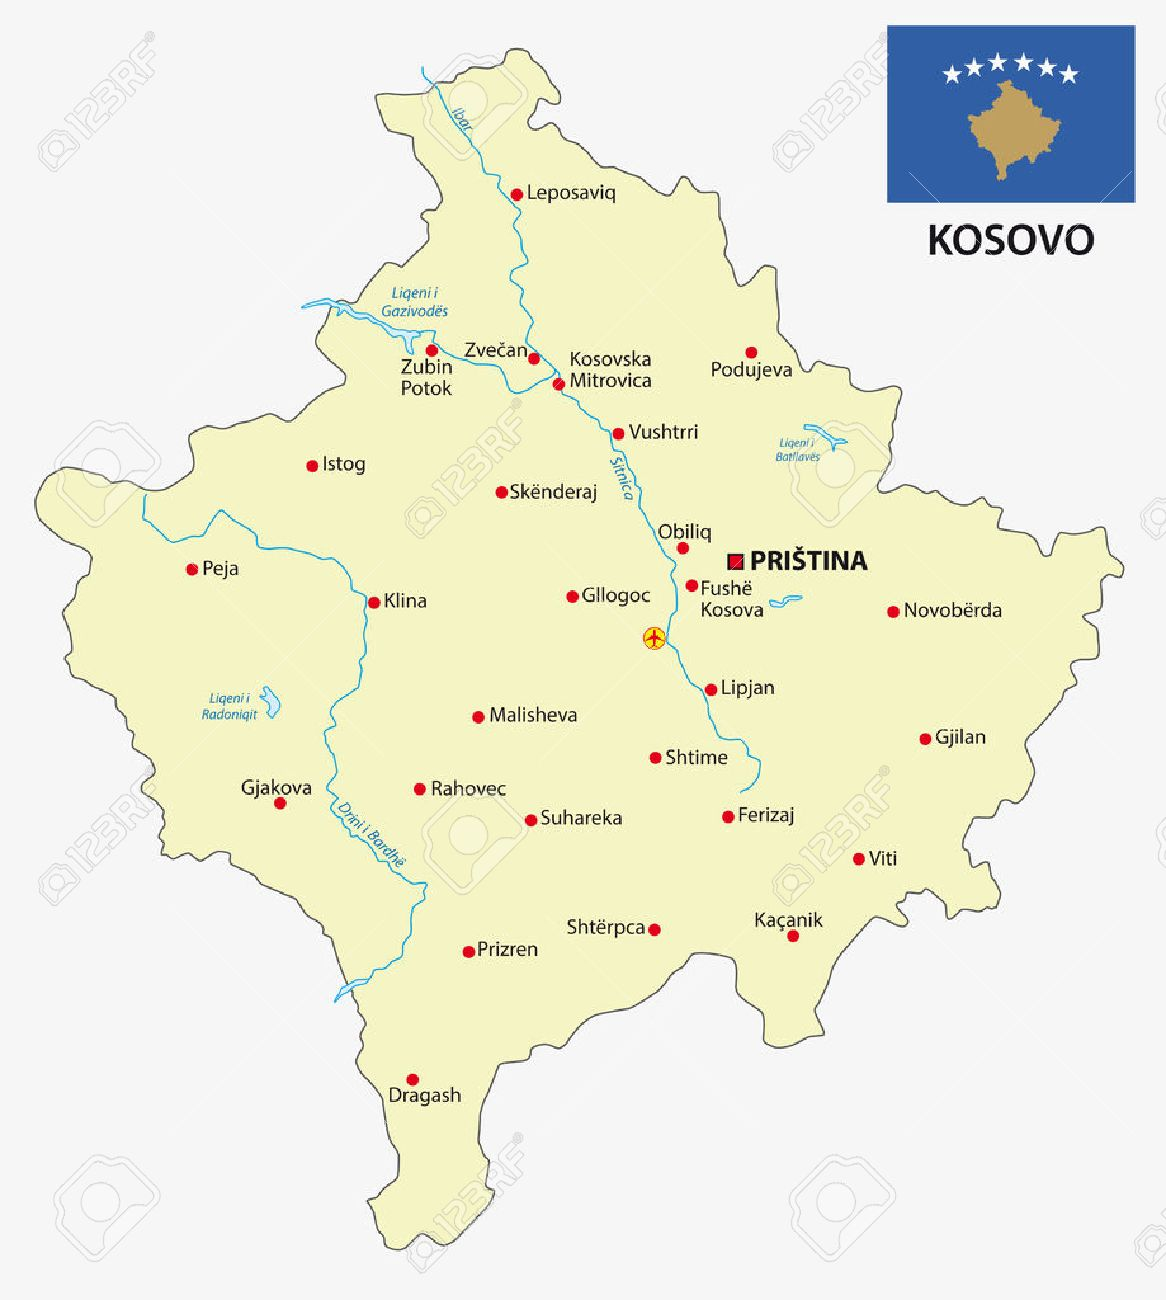 Kosovo Map With Flag Royalty Free Cliparts Vectors And Stock - Kosovo map